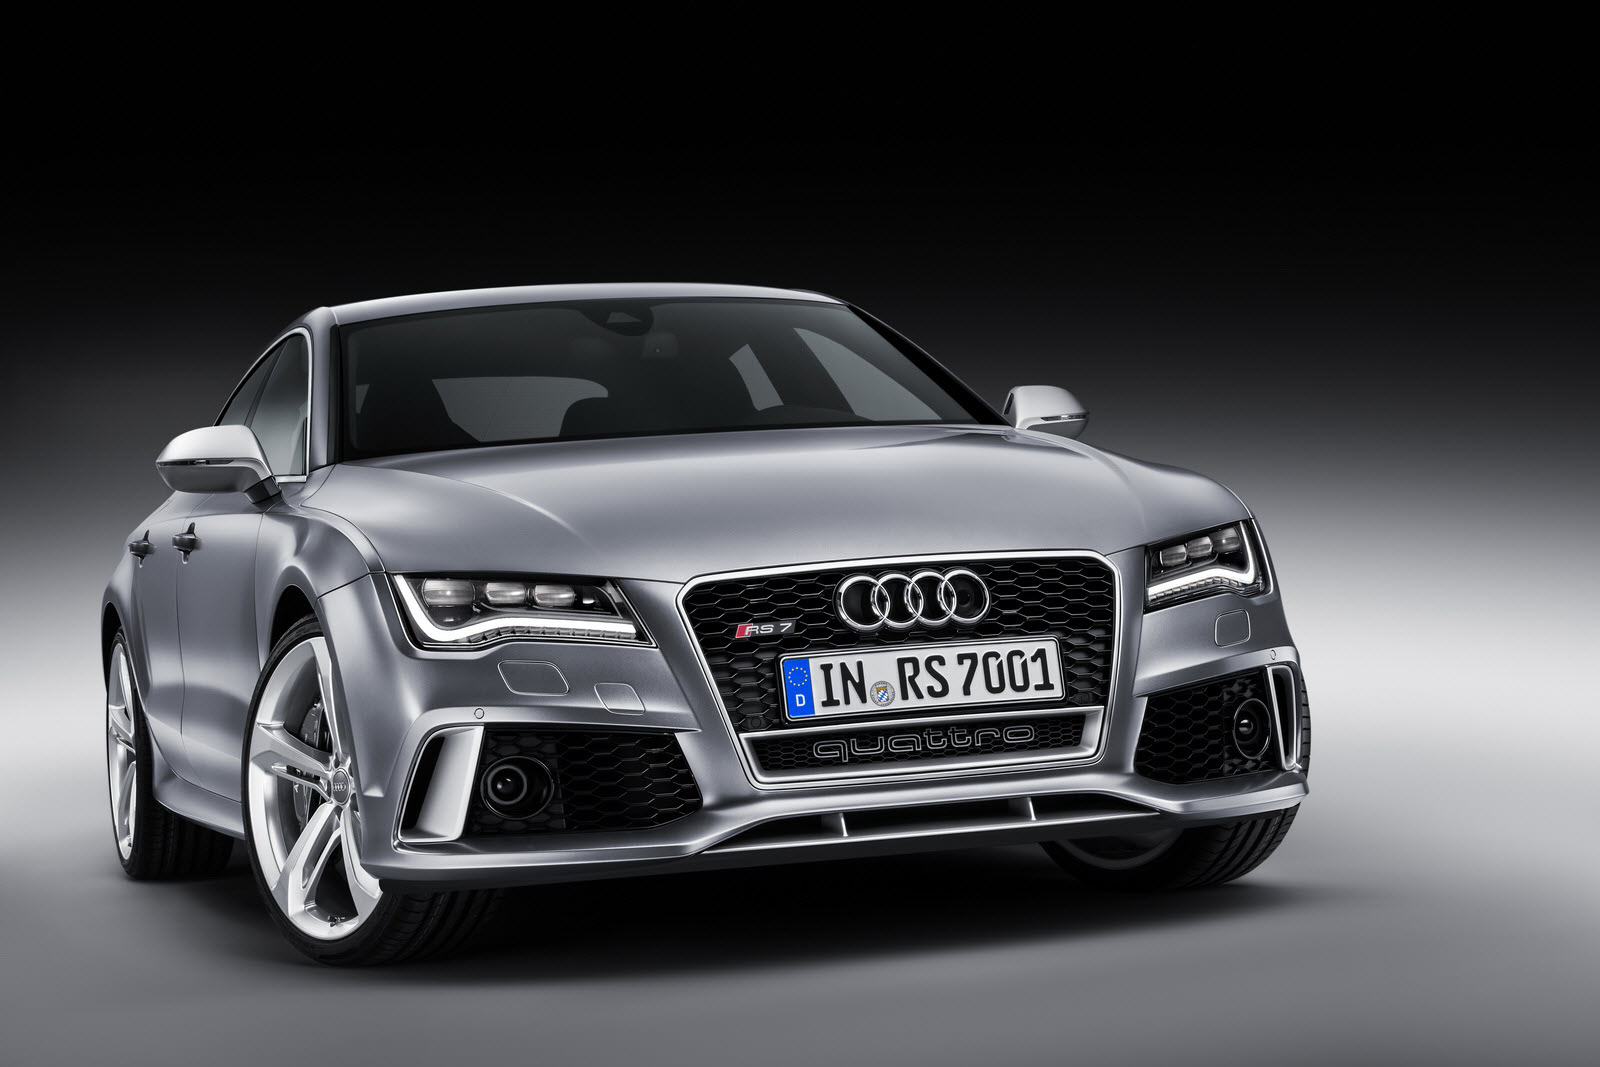 Dynamics At Their Most Beautiful The Audi Rs 7 Sportback Auto Rs7 Engine Diagrams Aesthetic Design Innovative Technology And Impressive Sportiness Large Five Door Coupe From Combines Many Strengths To